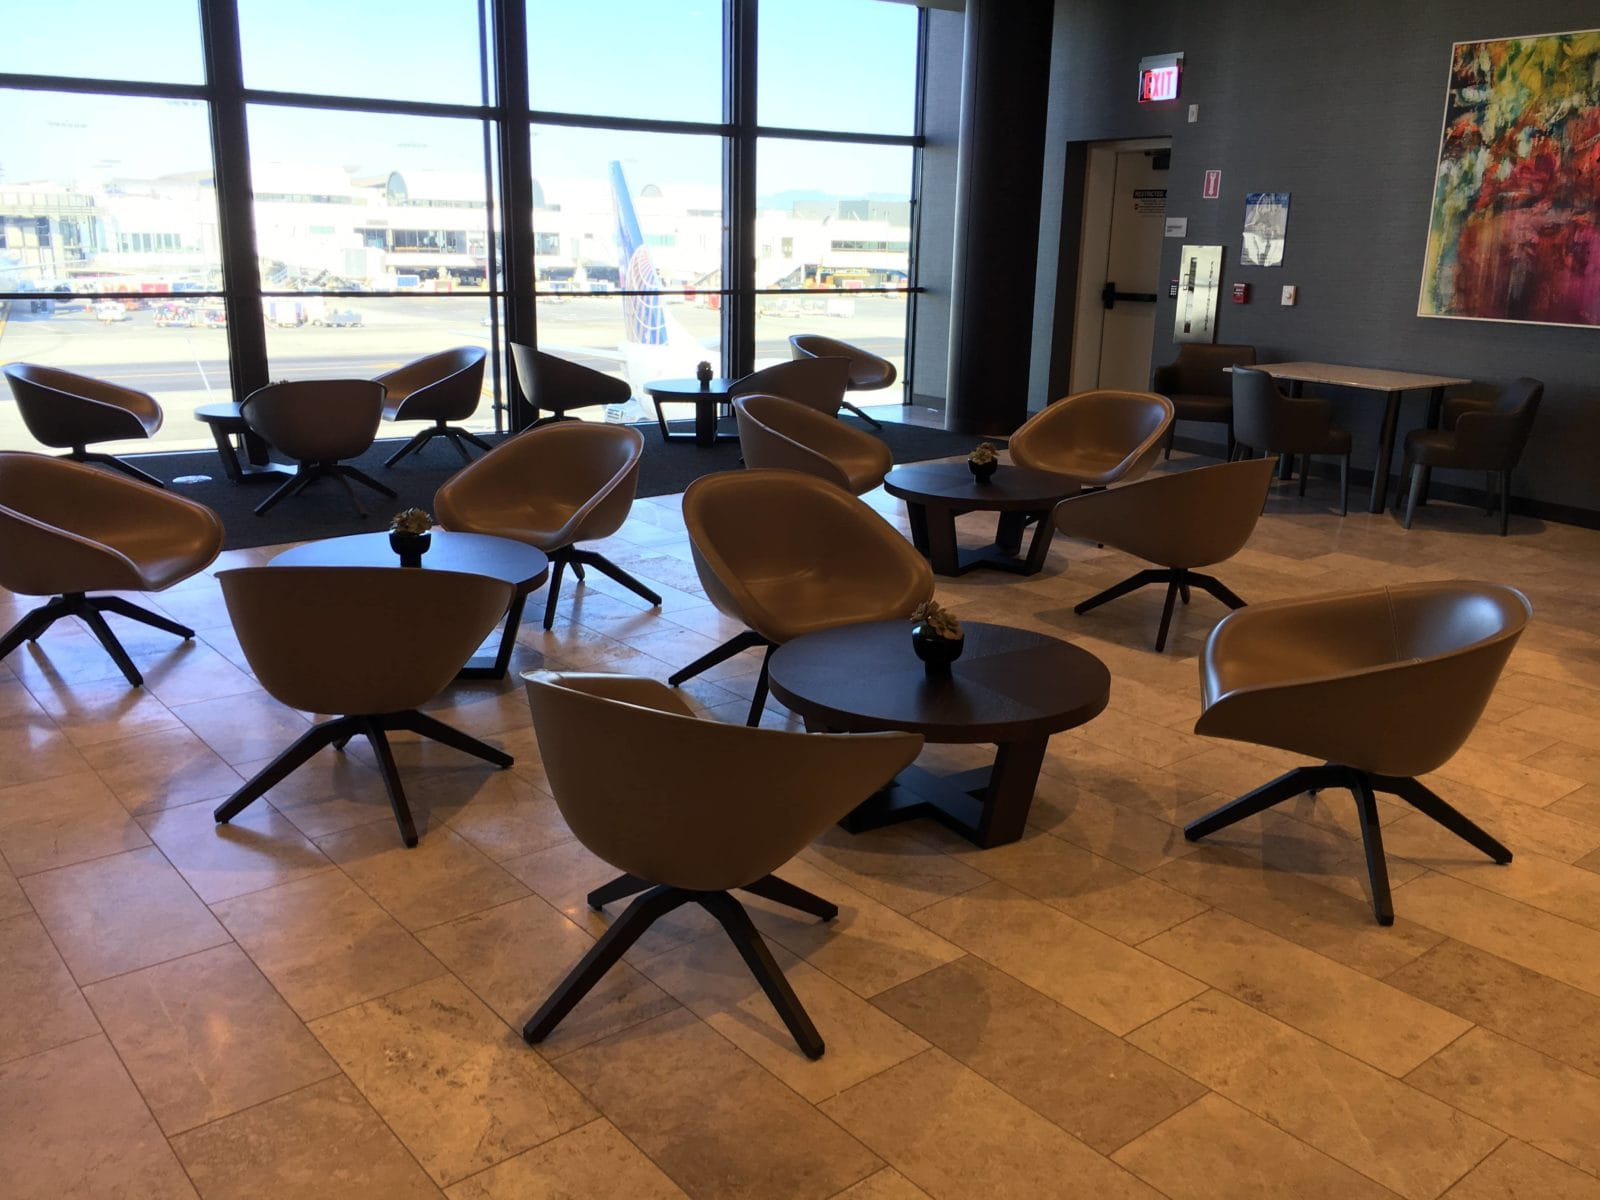 United Polaris Lounge LAX - 3er Sitzgruppe